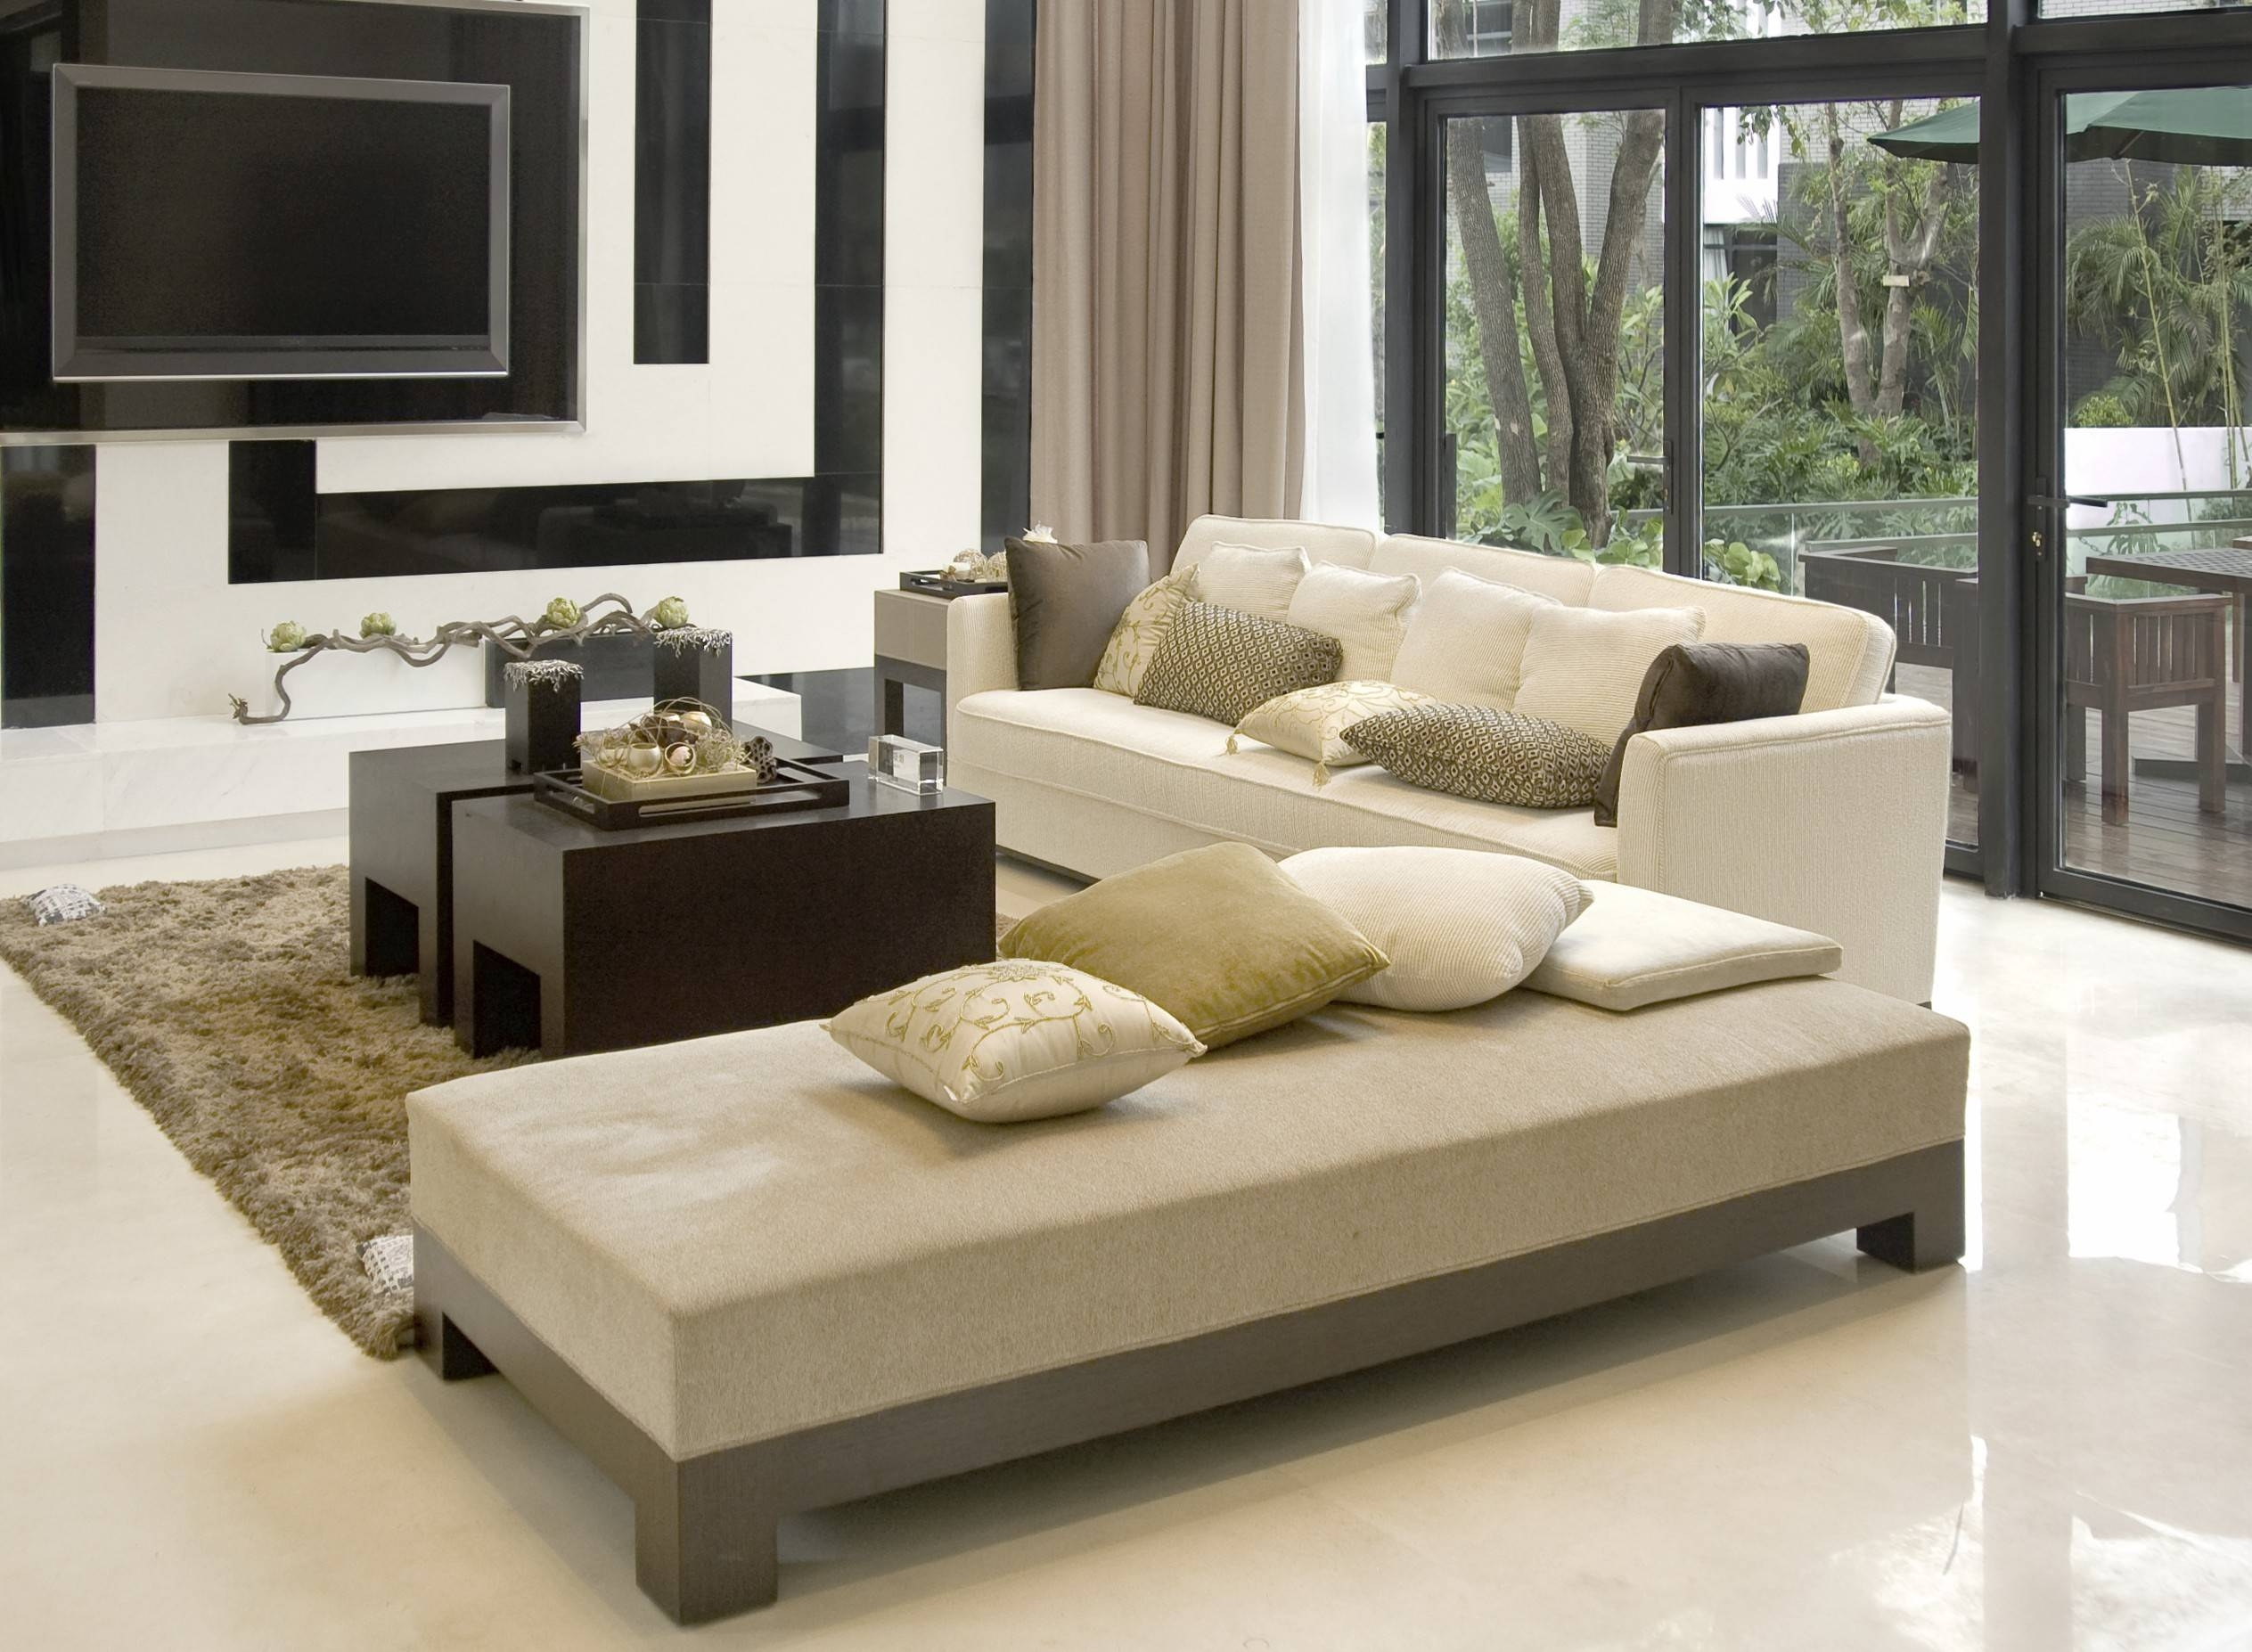 Living Room : Delectable Living Space Nyc Design Ideas With Cream regarding Cream Colored Sofas (Image 16 of 30)